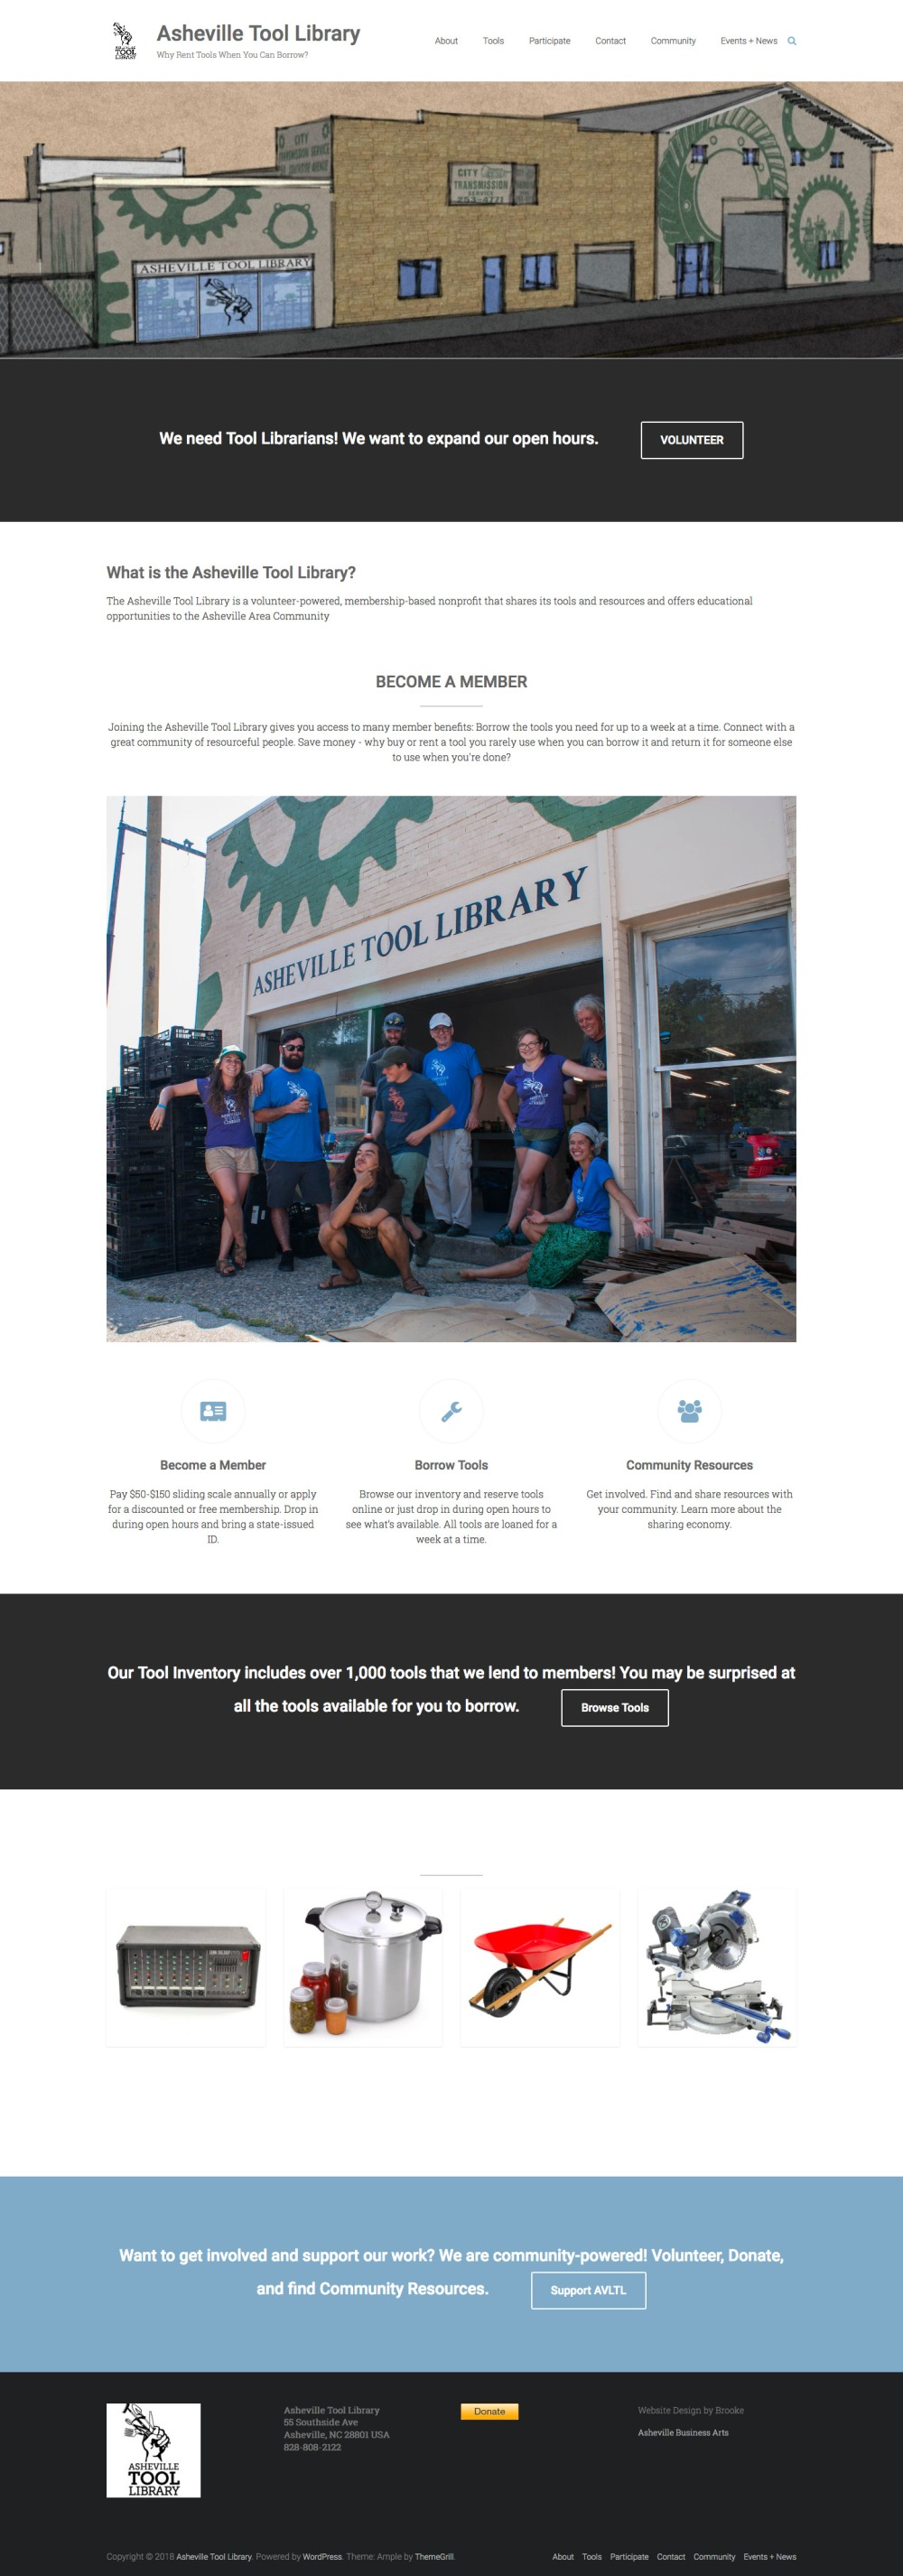 Asheville Tool Library website redesign by Asheville Business Arts